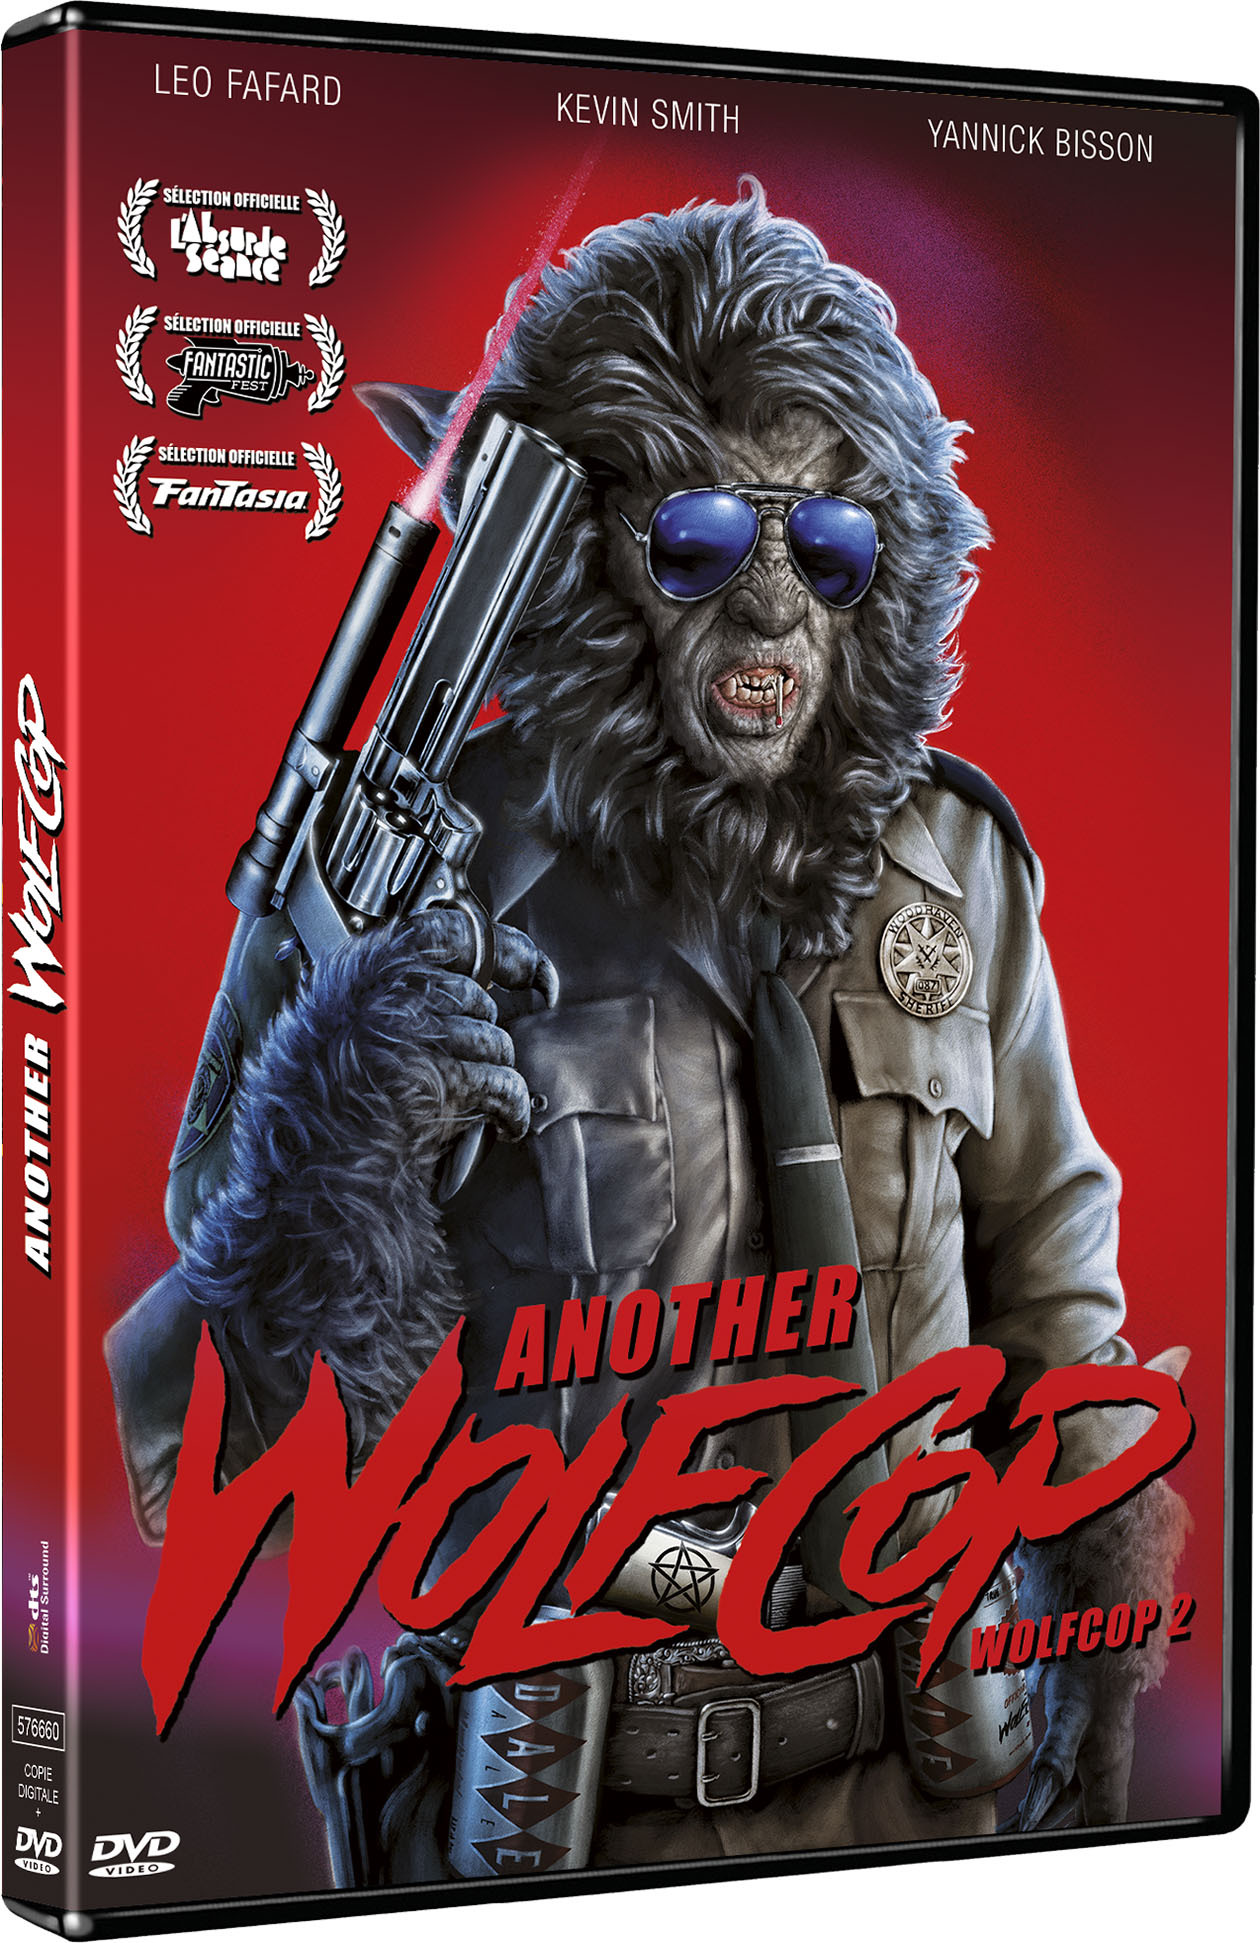 ANOTHER WOLFCOP - DVD